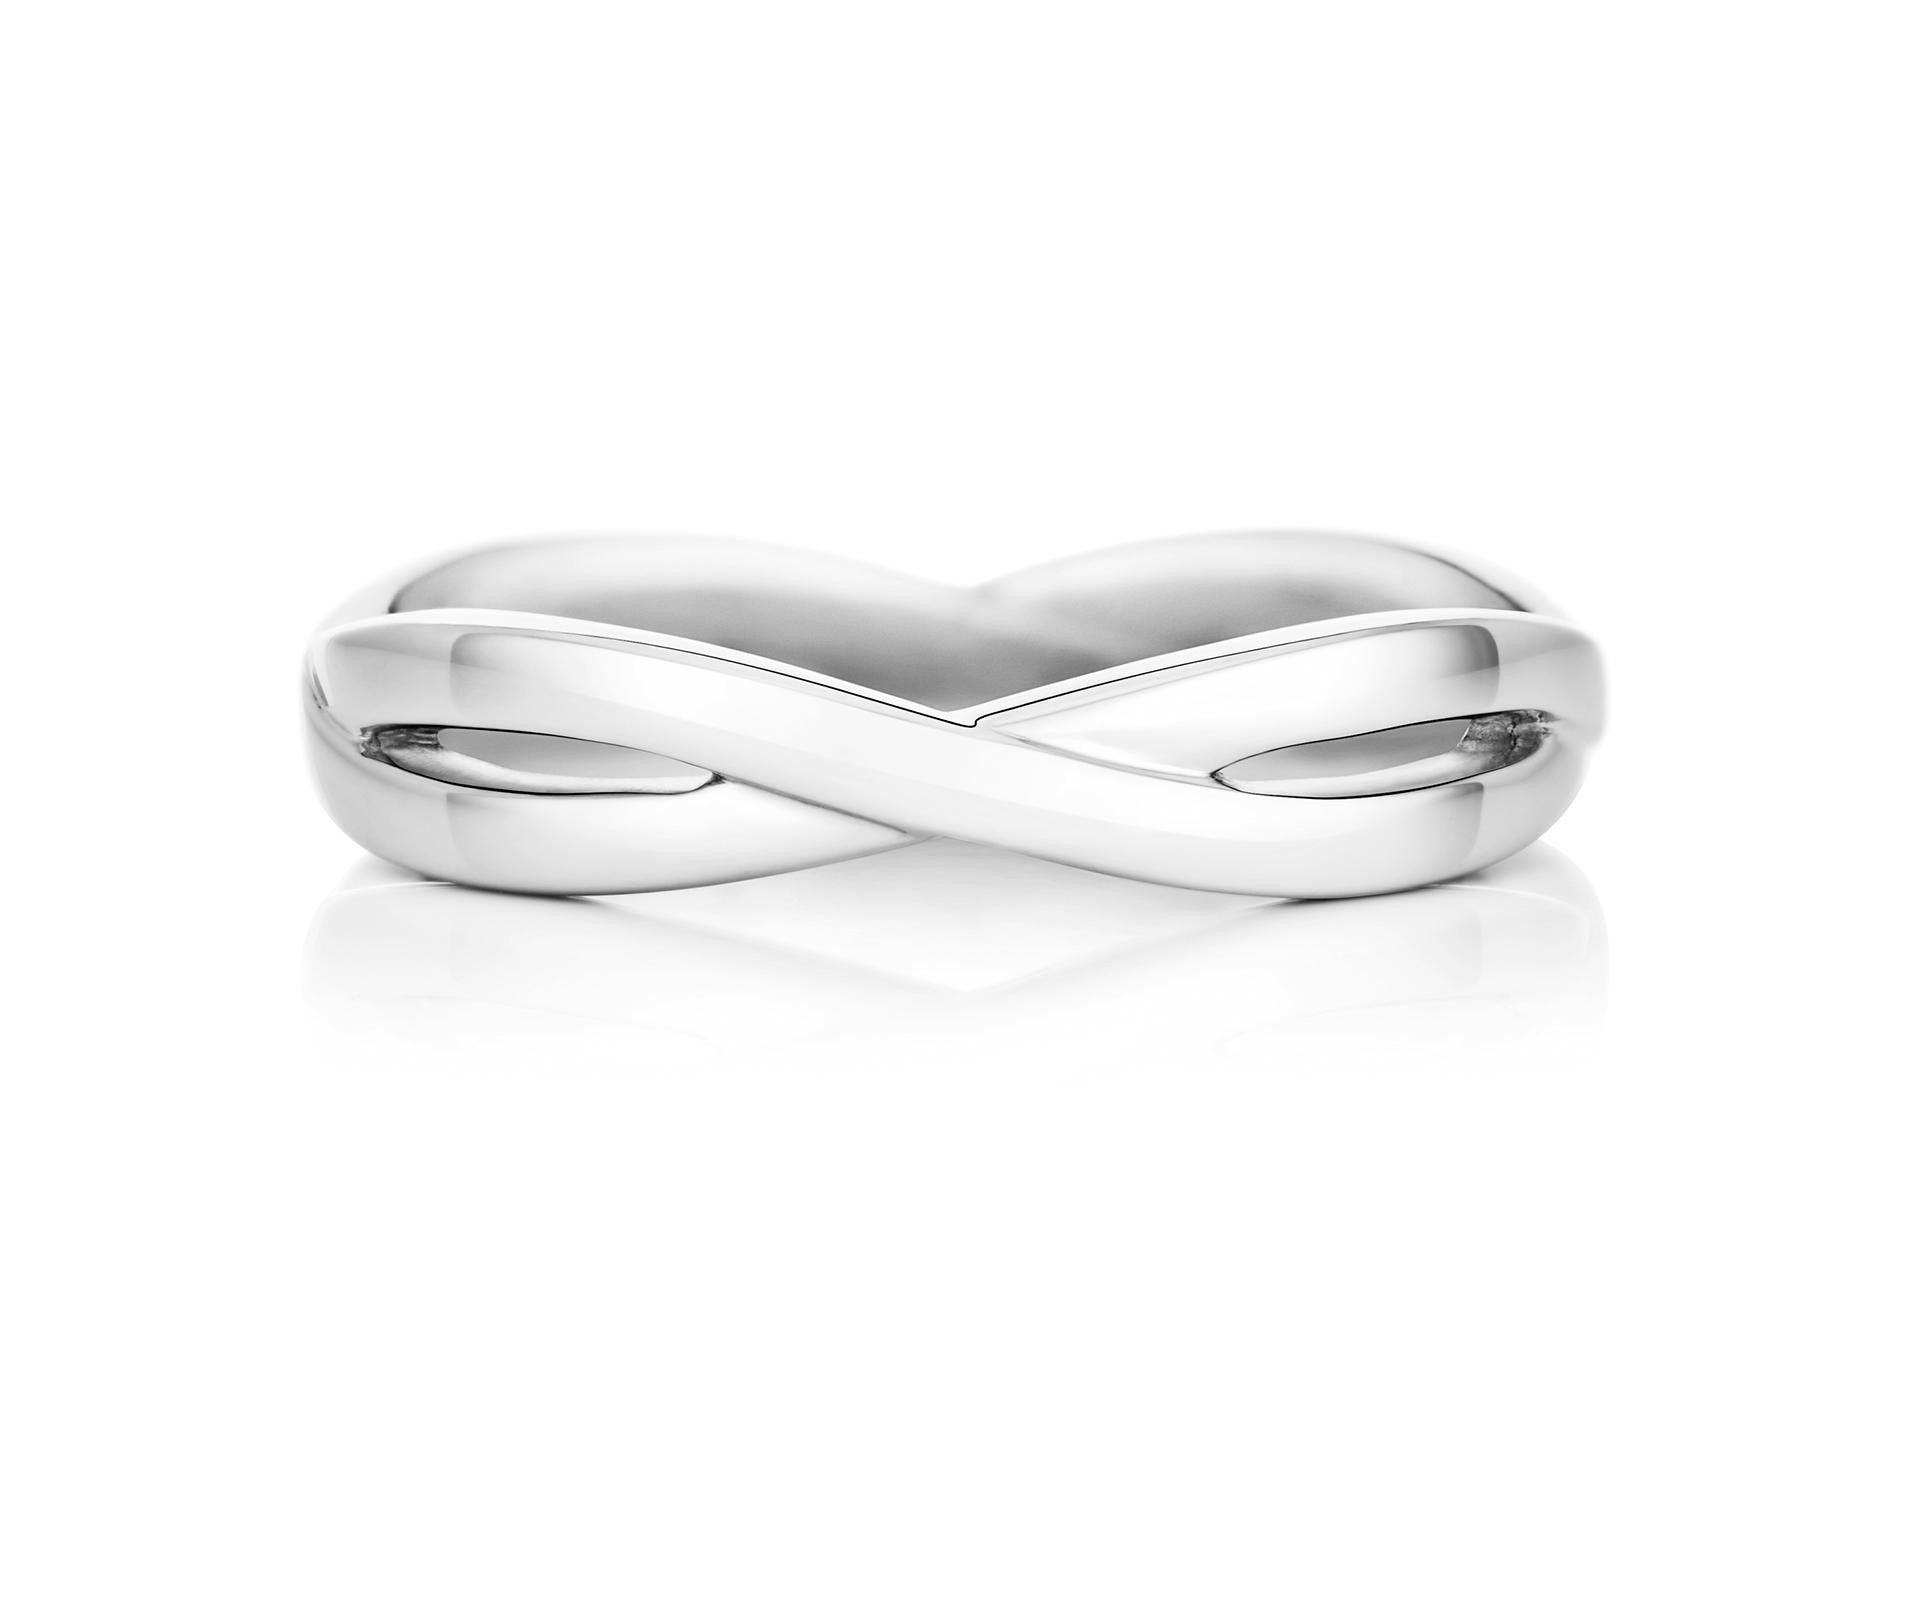 platinum jewelove infinity your free favorite bands jewelry pin for in win blog love